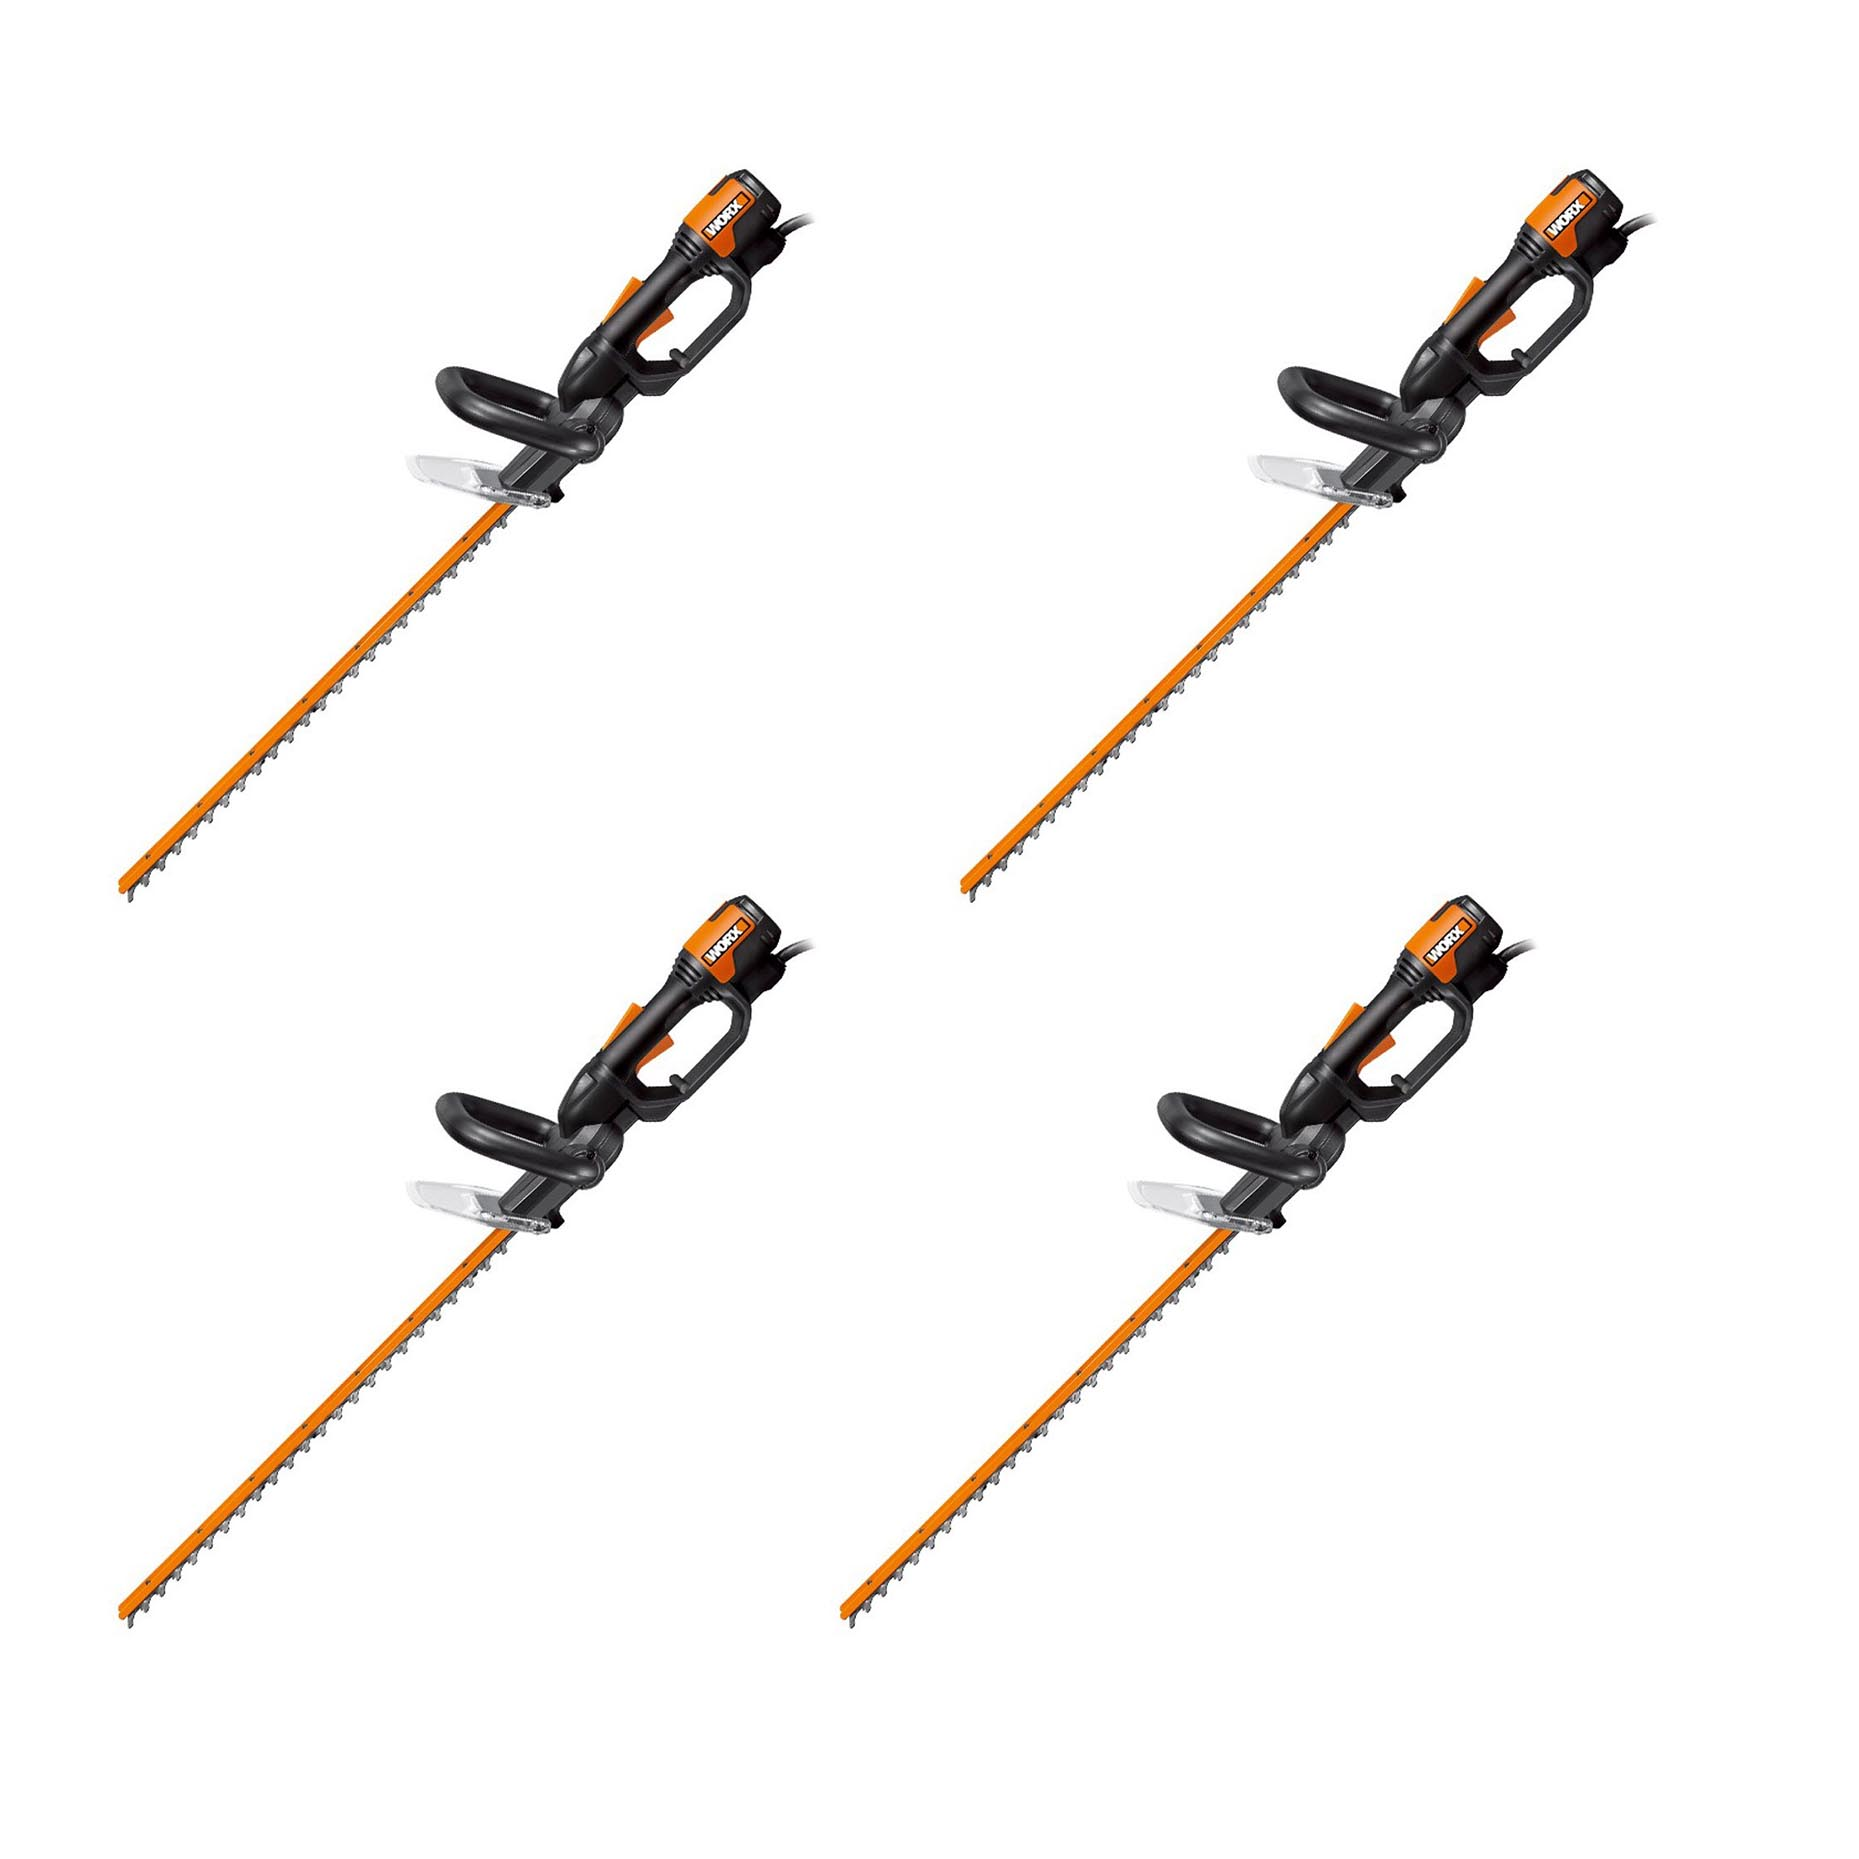 Worx WG209 24 Inch 4 Amp Lightweight Corded Electric Hedge